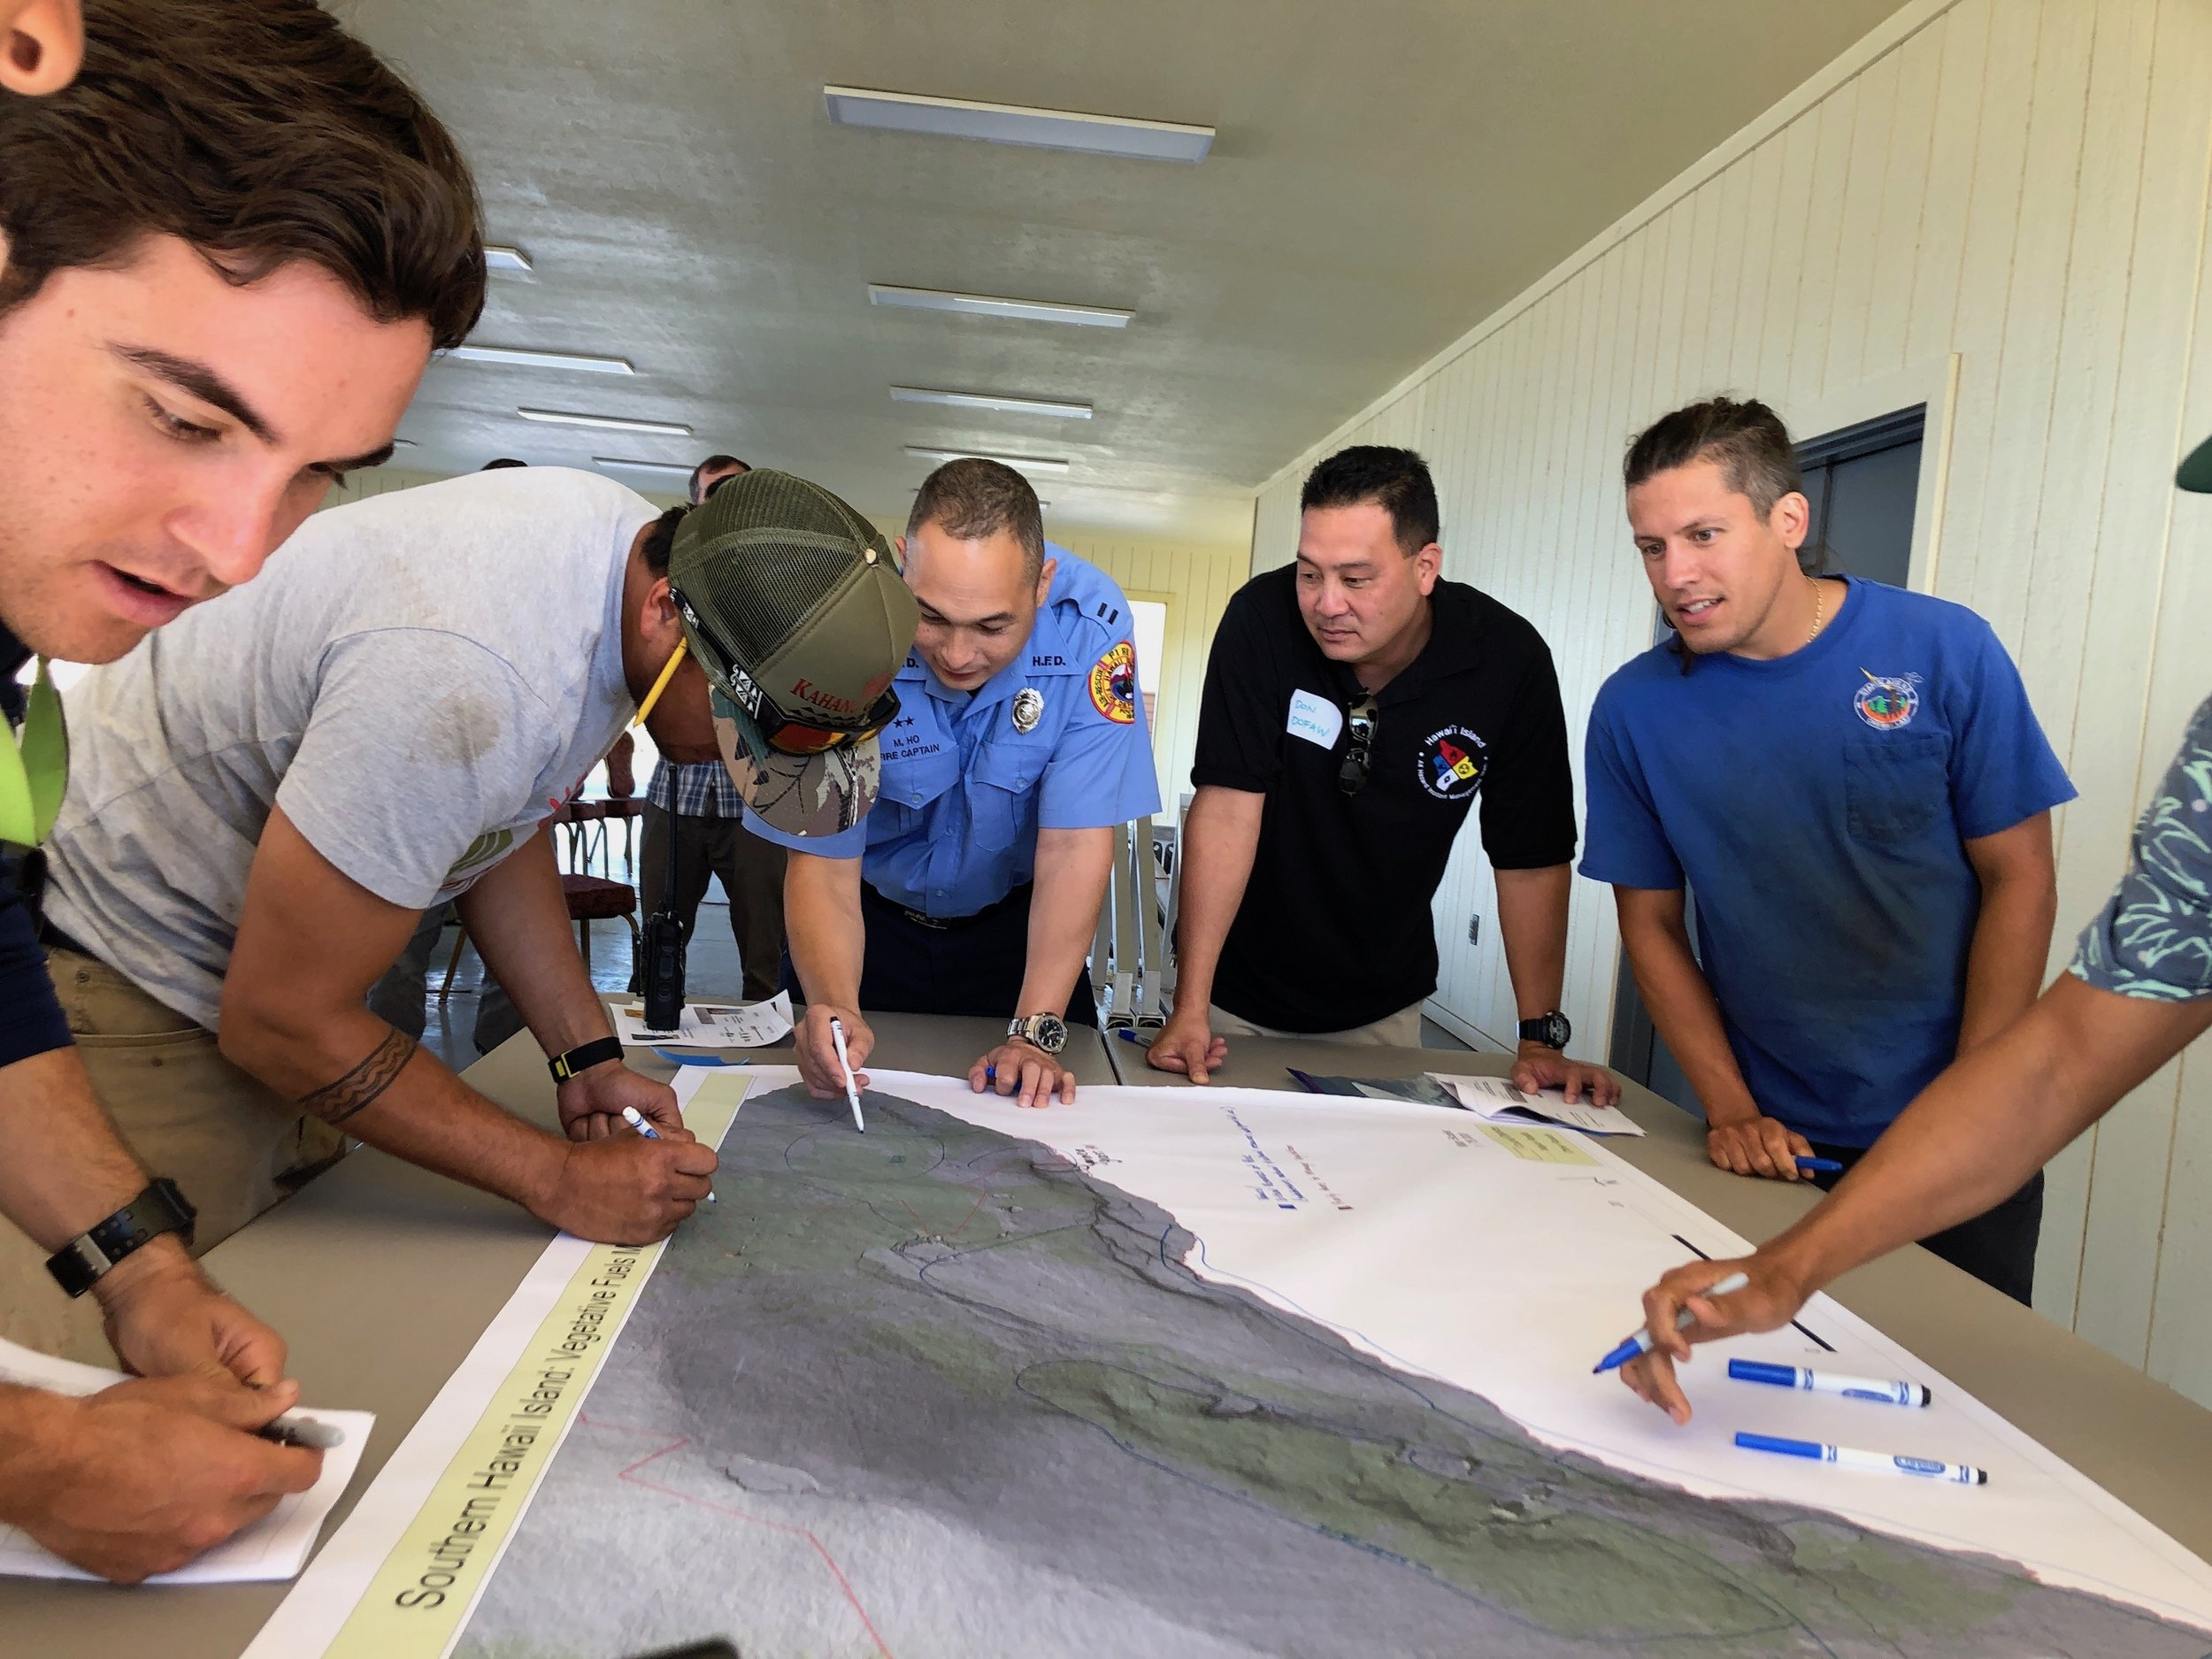 Hawaii Island Kailapa Vegetative Fuels Management Collaborative Action Planning Workshop_2_26_2019_31.jpg